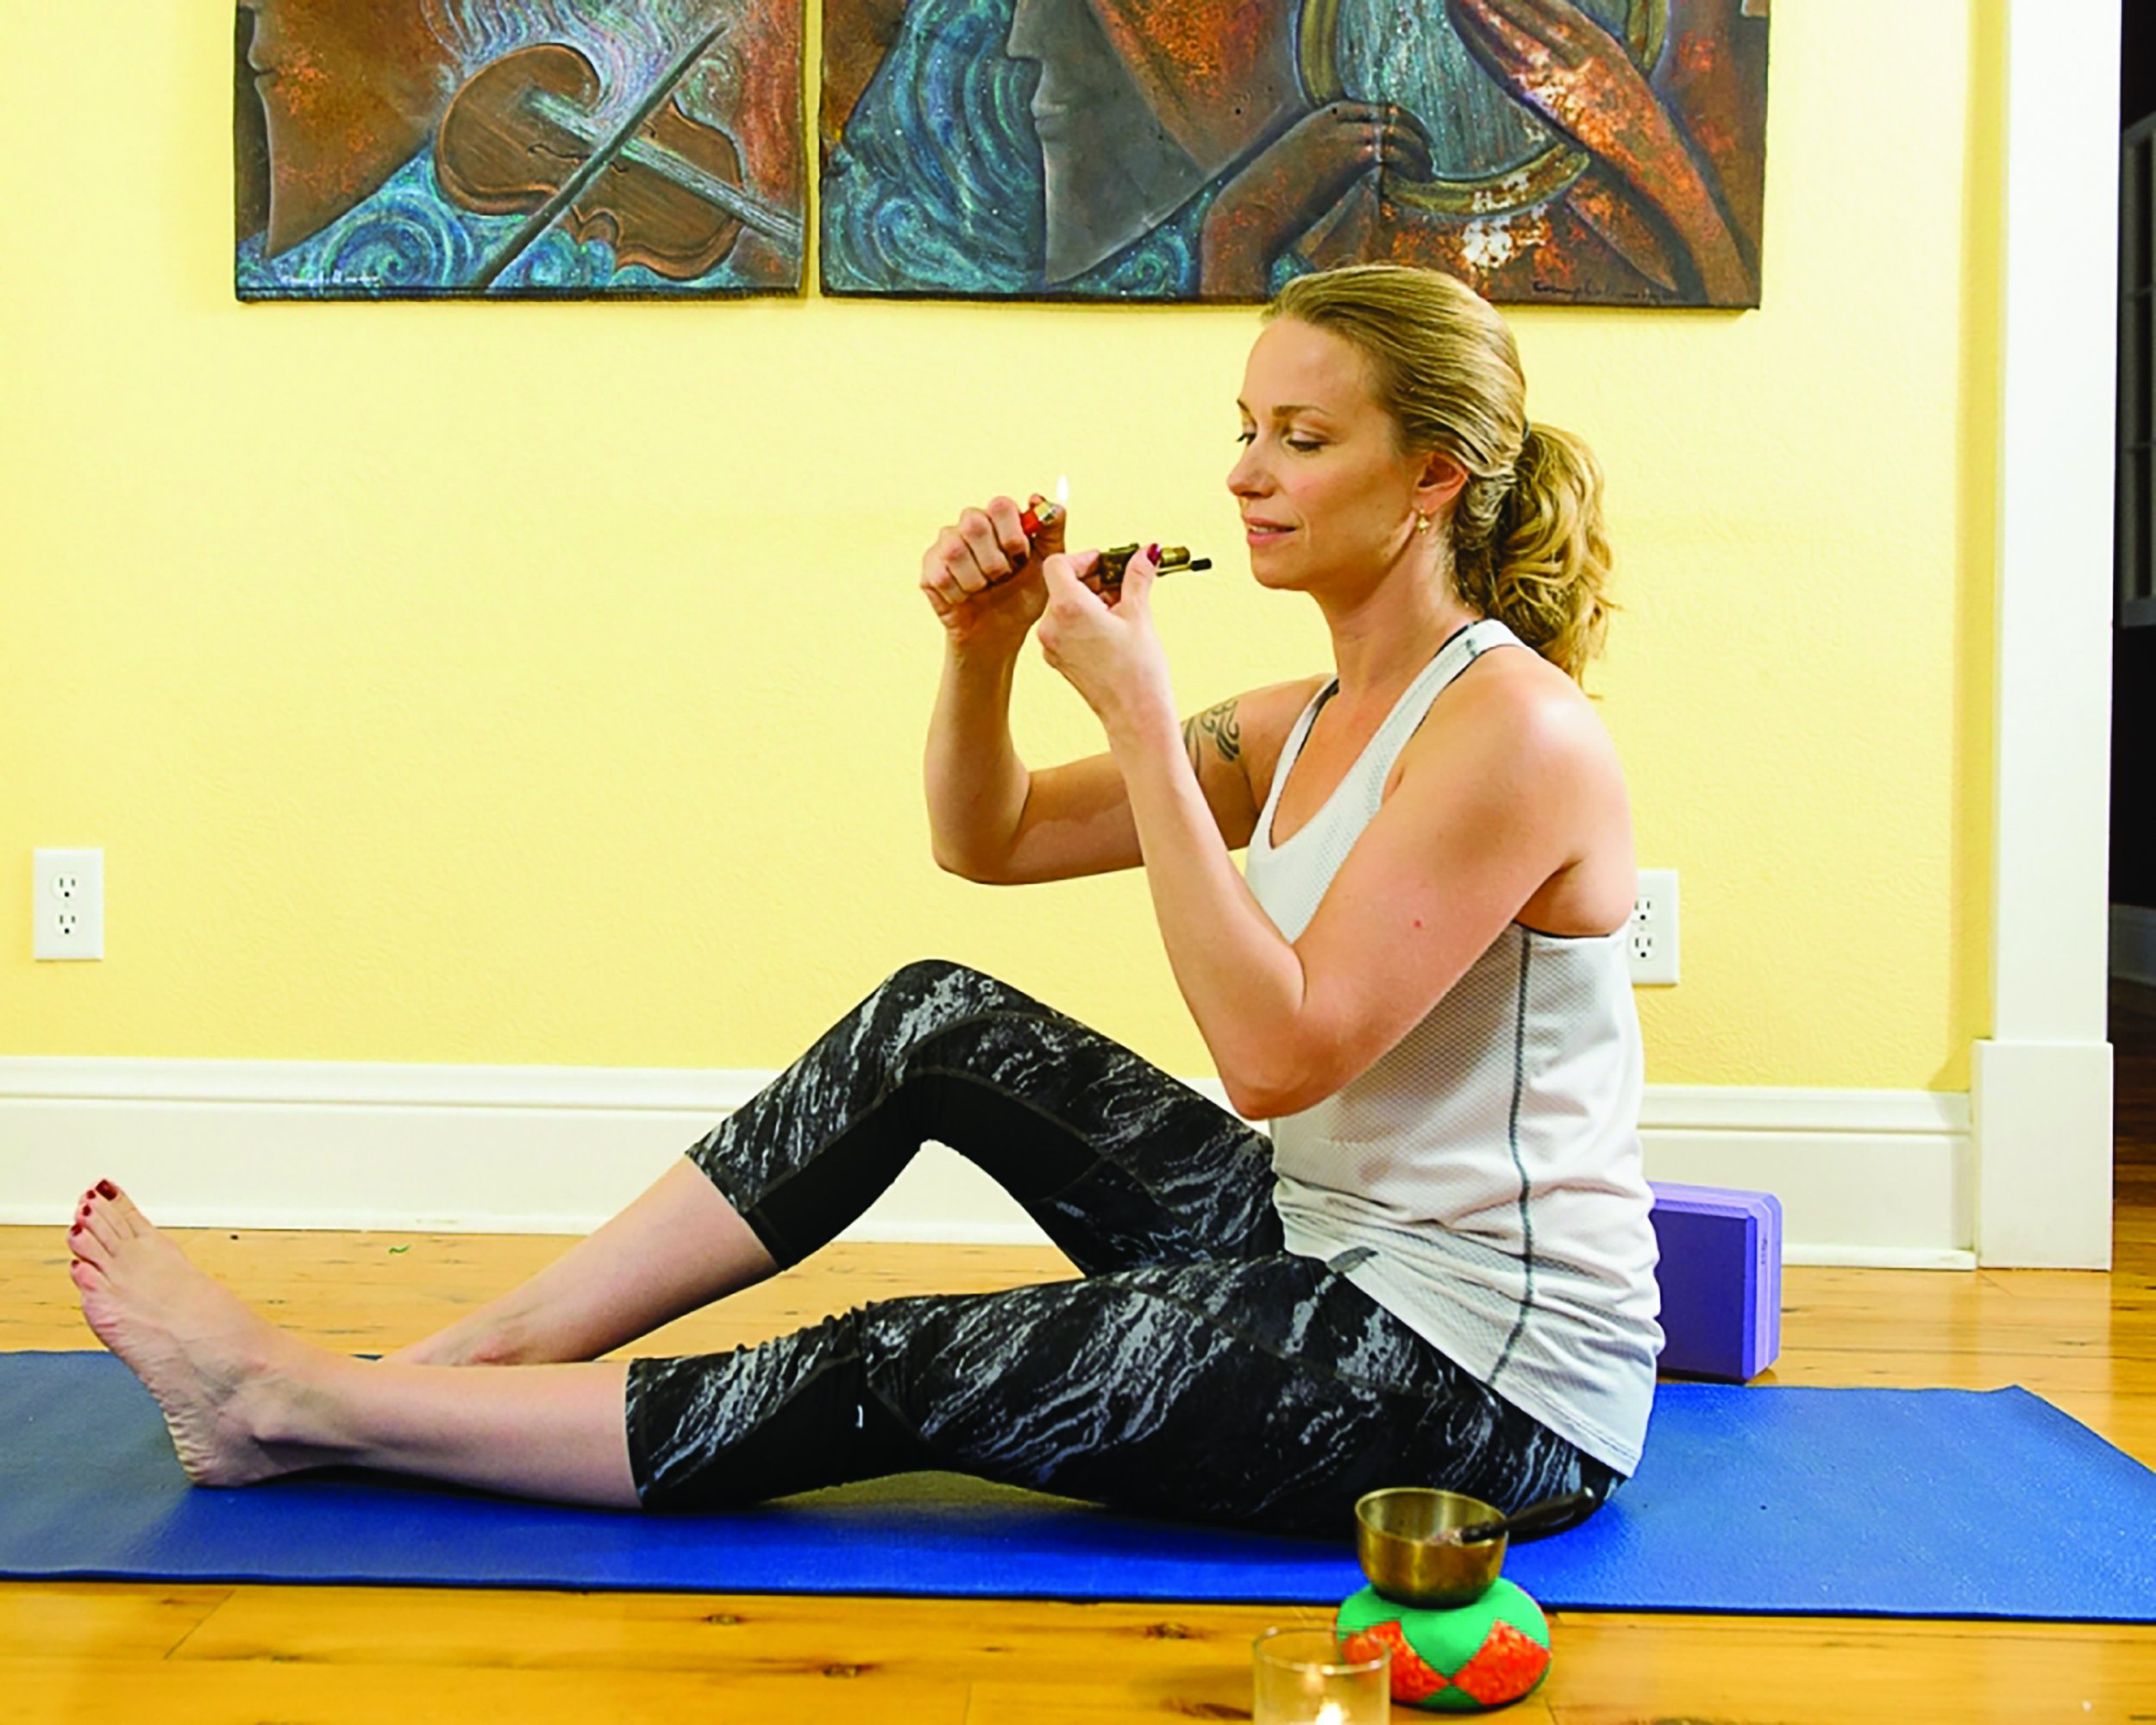 white-female-smoking-marijuana-yoga_4109